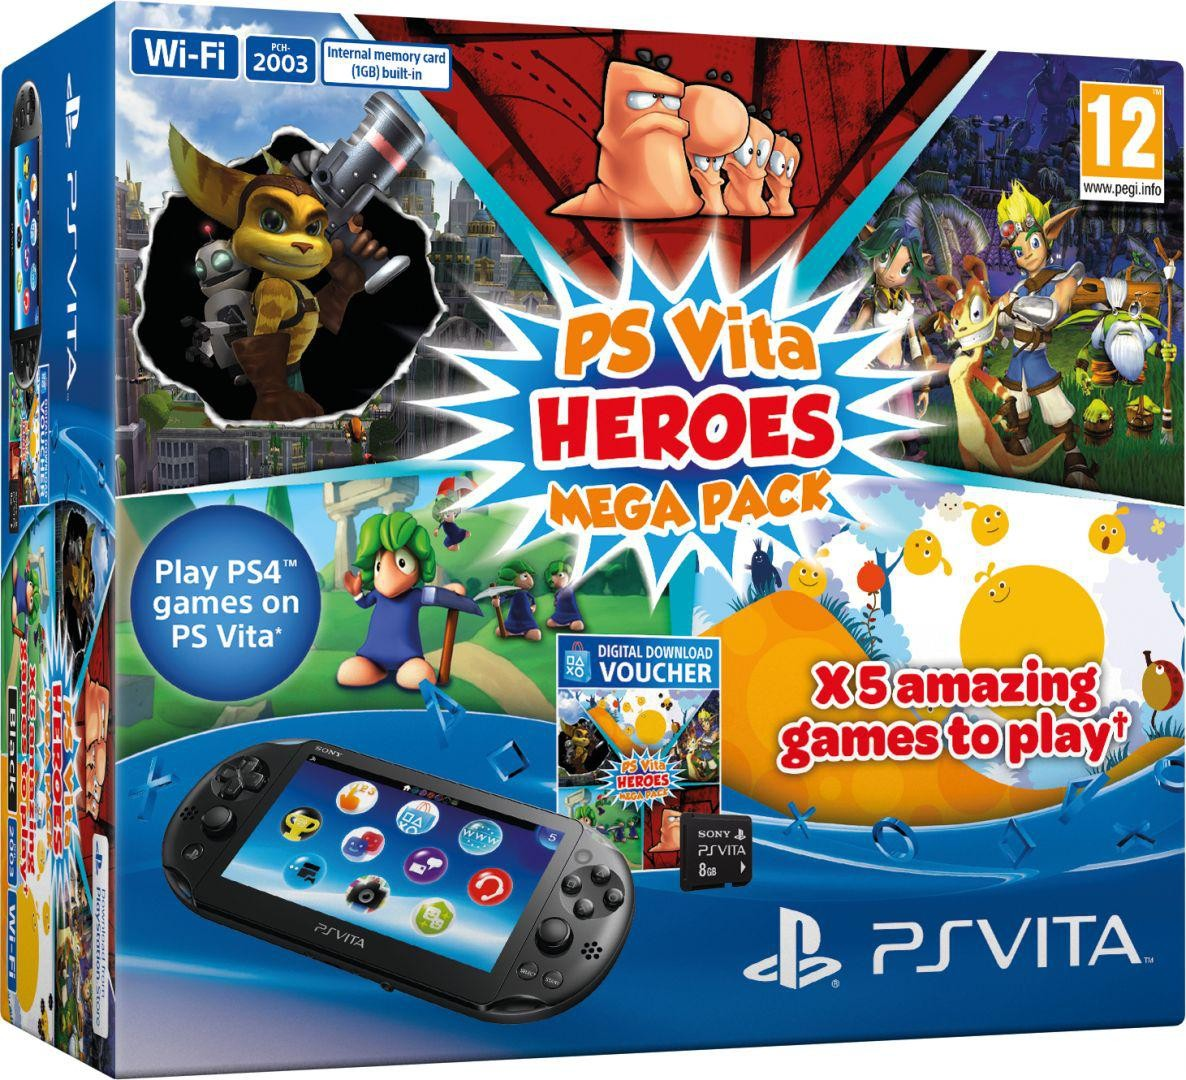 Комплект PS Vita Heroes Mega Pack + карта памяти 8 GB